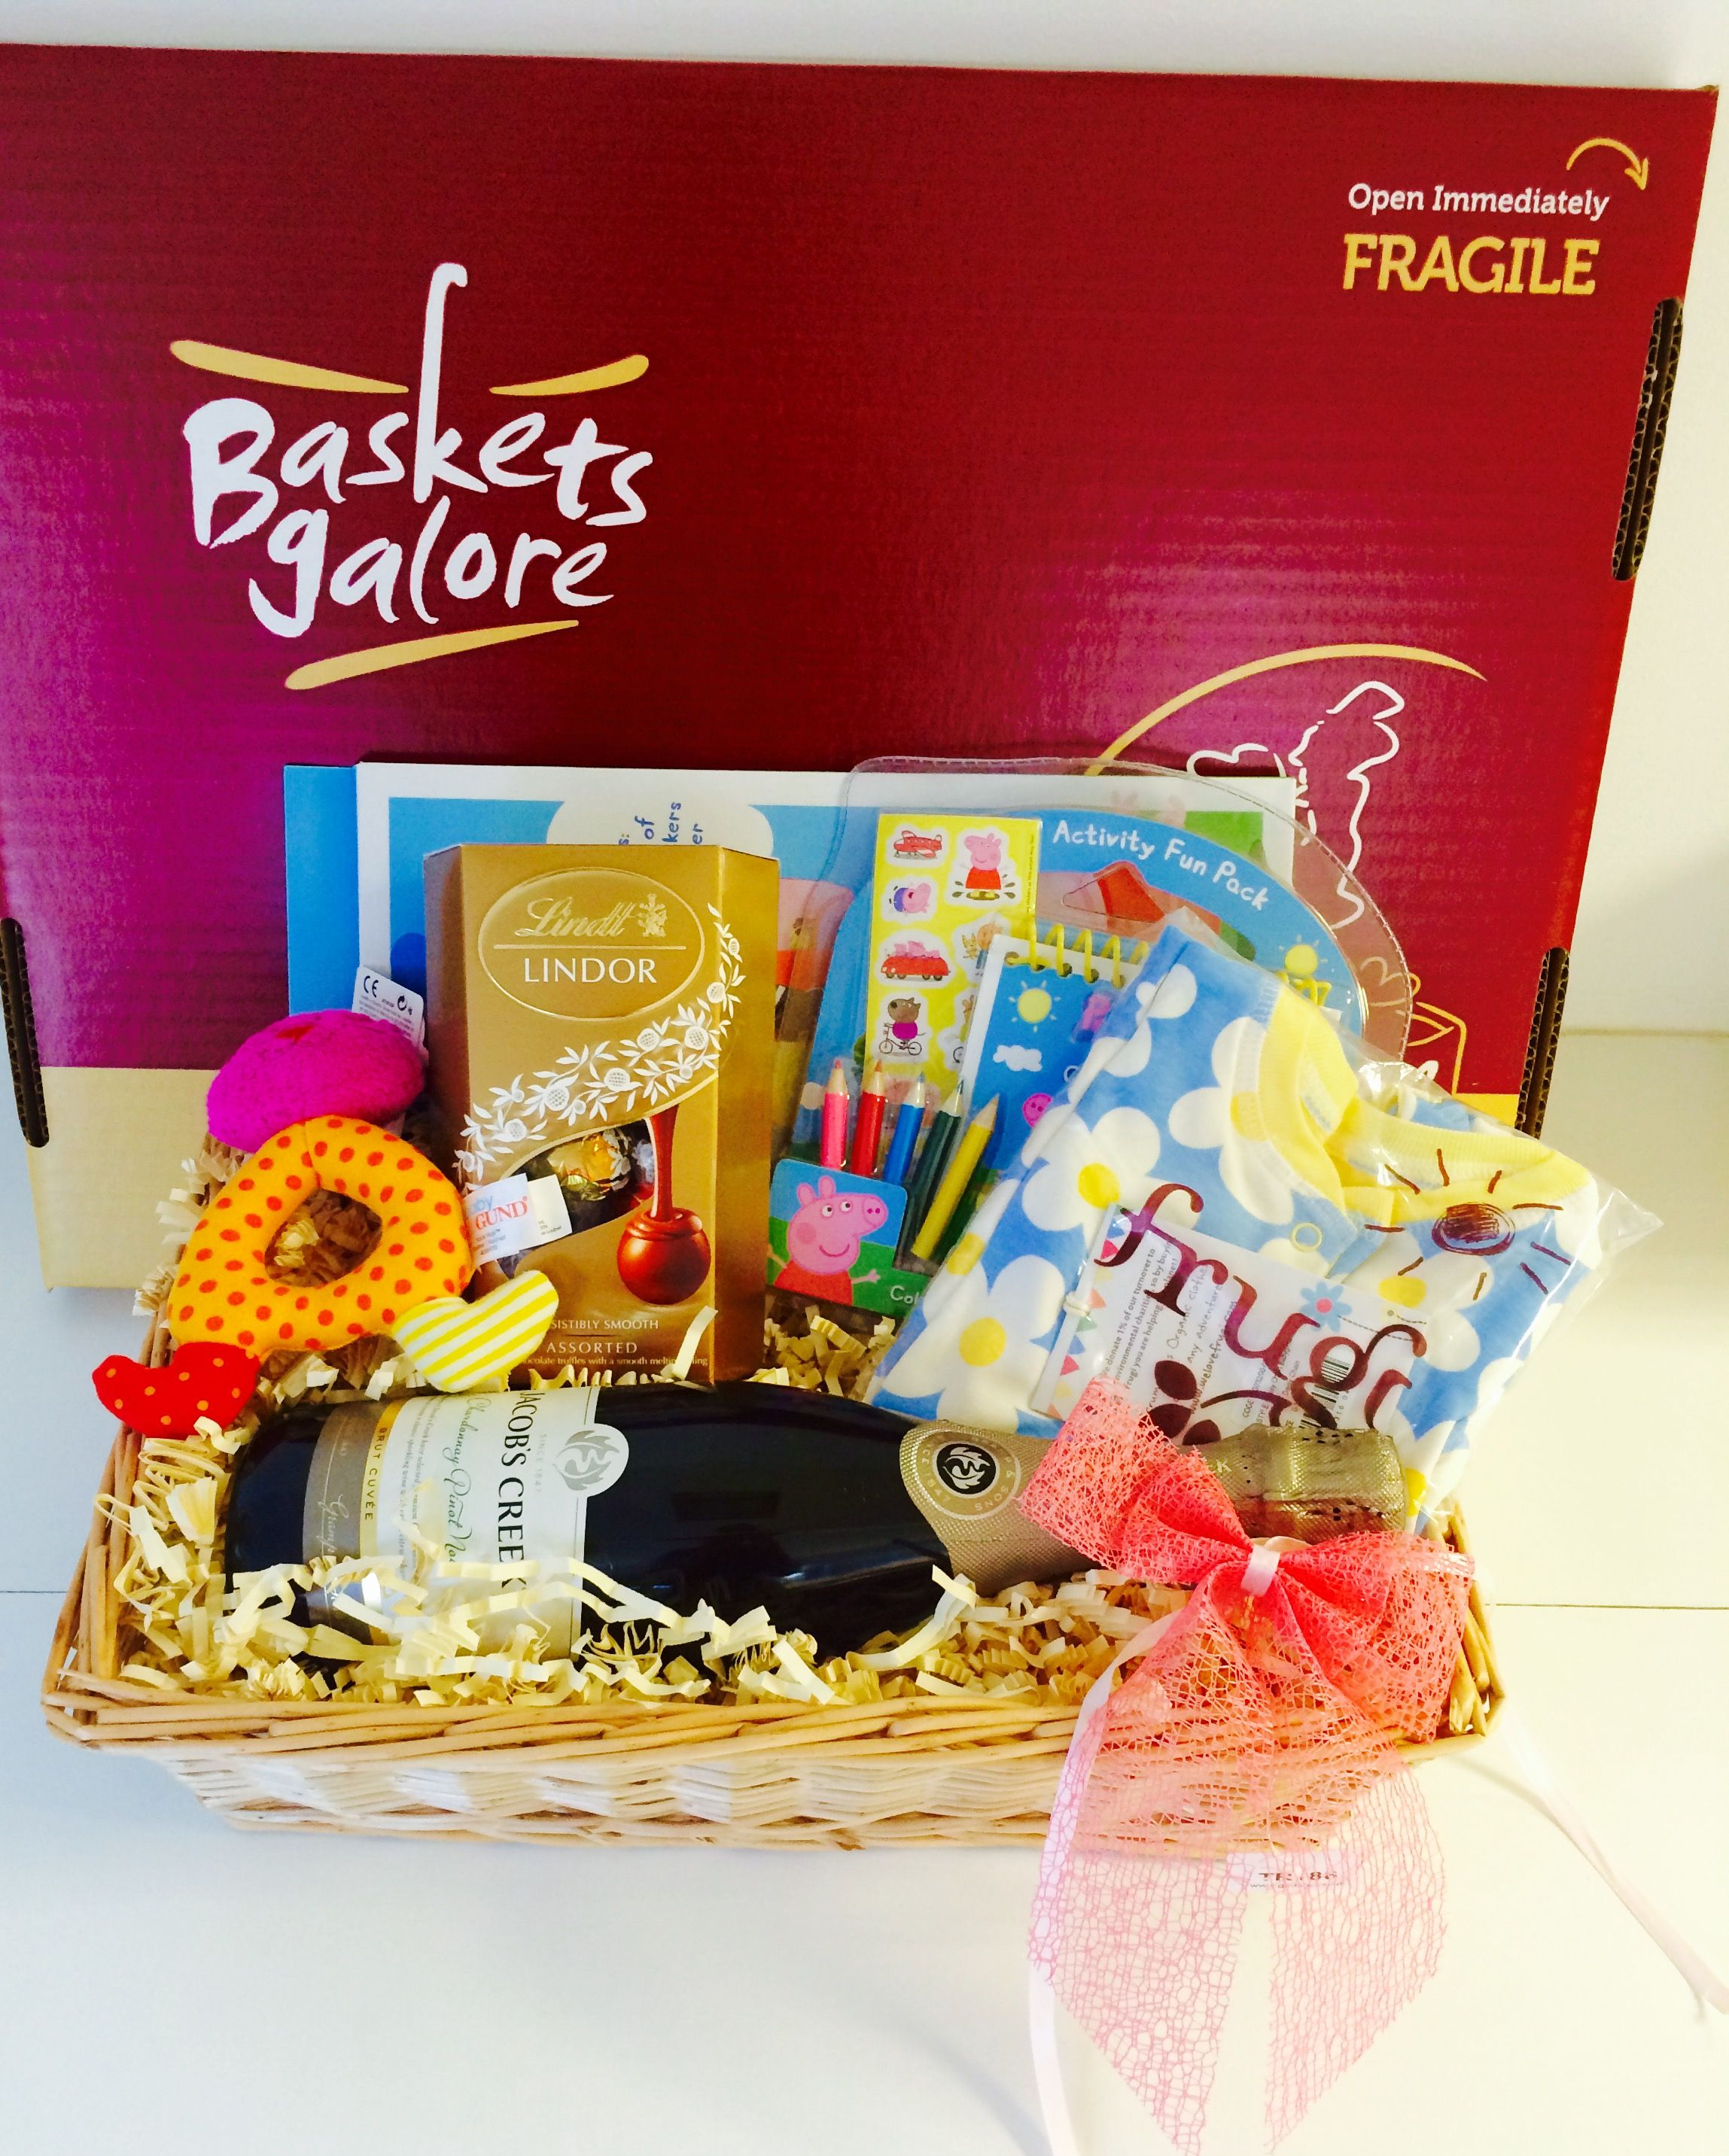 Family Gift Basket To Welcome A New Arrival Gifts For Mum Dad Baby And Sibling Family Gift Baskets Gift Hampers Gift Baskets